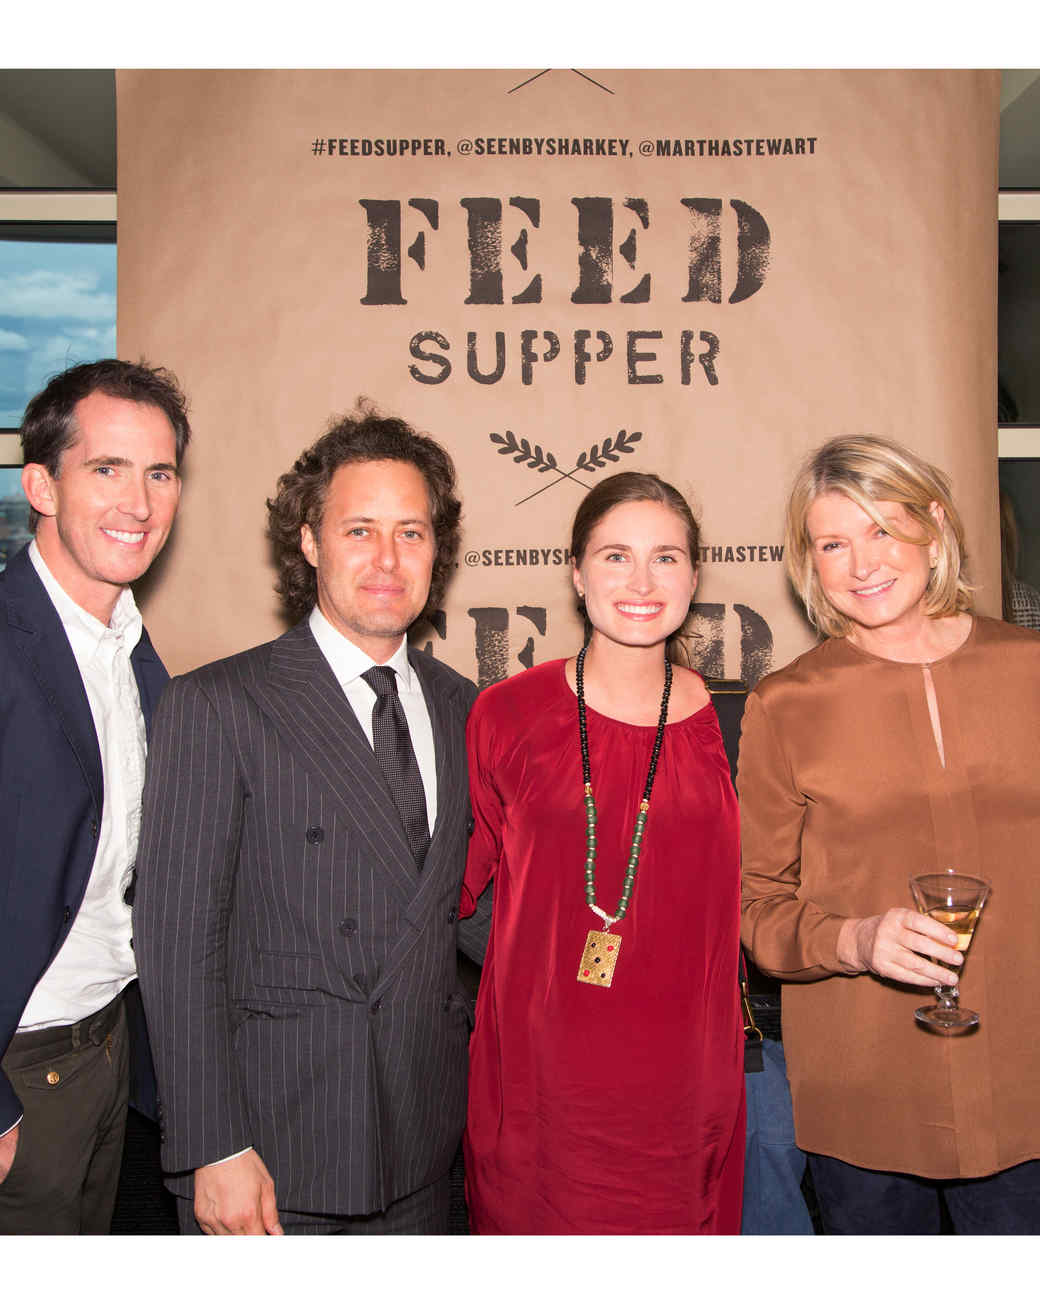 feed-lauren-bush-martha.jpg